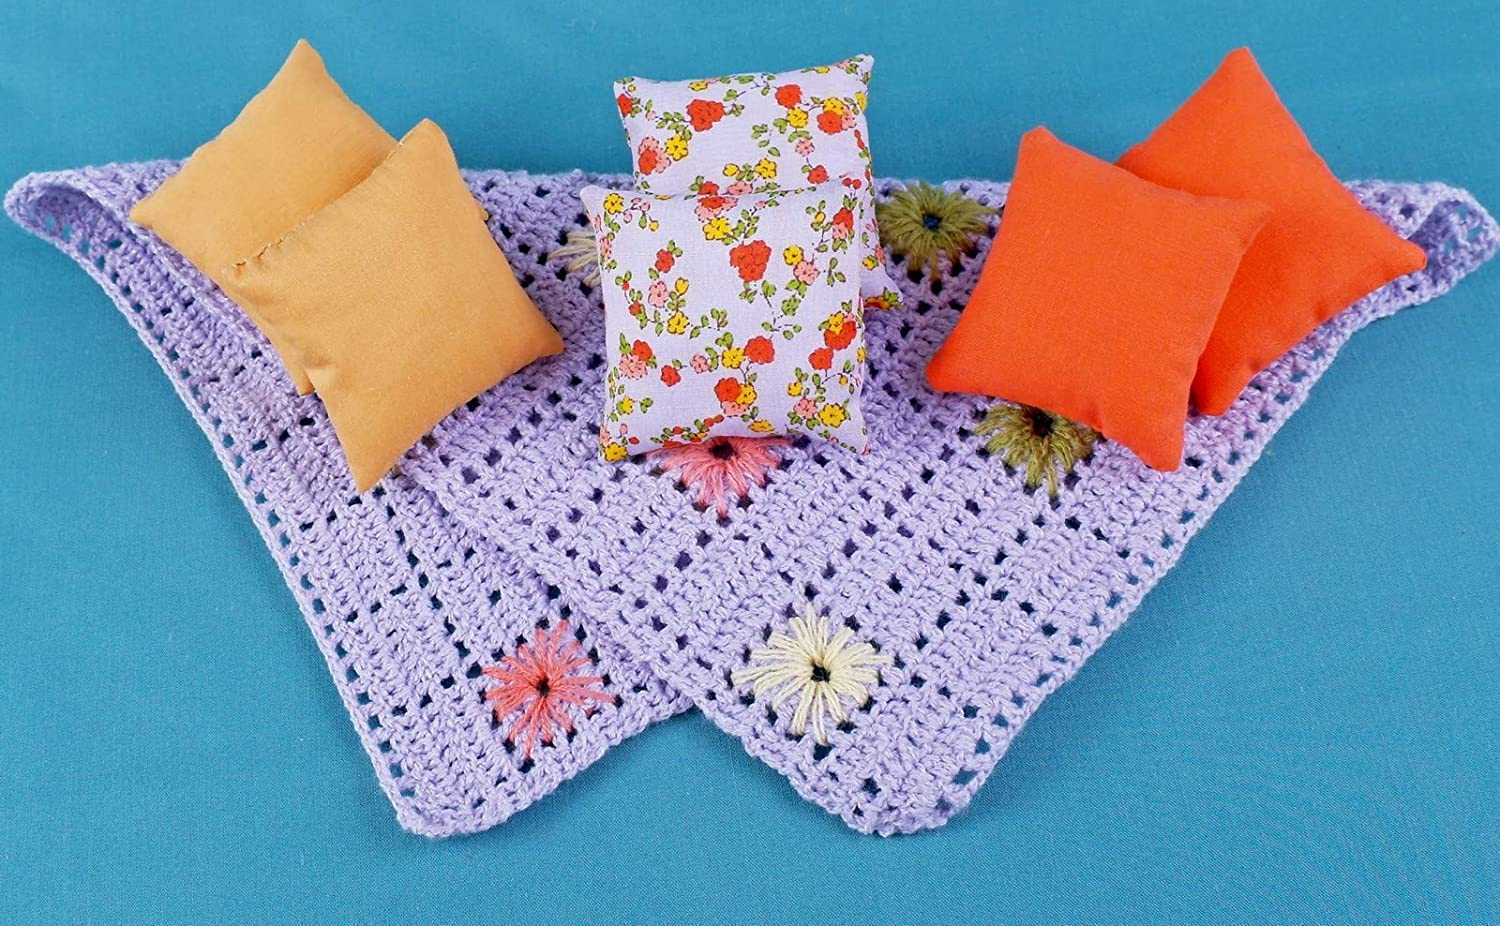 Pillows blanket set dollhouse miniature 1//6 Scale 1:6 play-scale 12 inch for Barbie Blythe coverlet miniature dolls accessories role-playing games